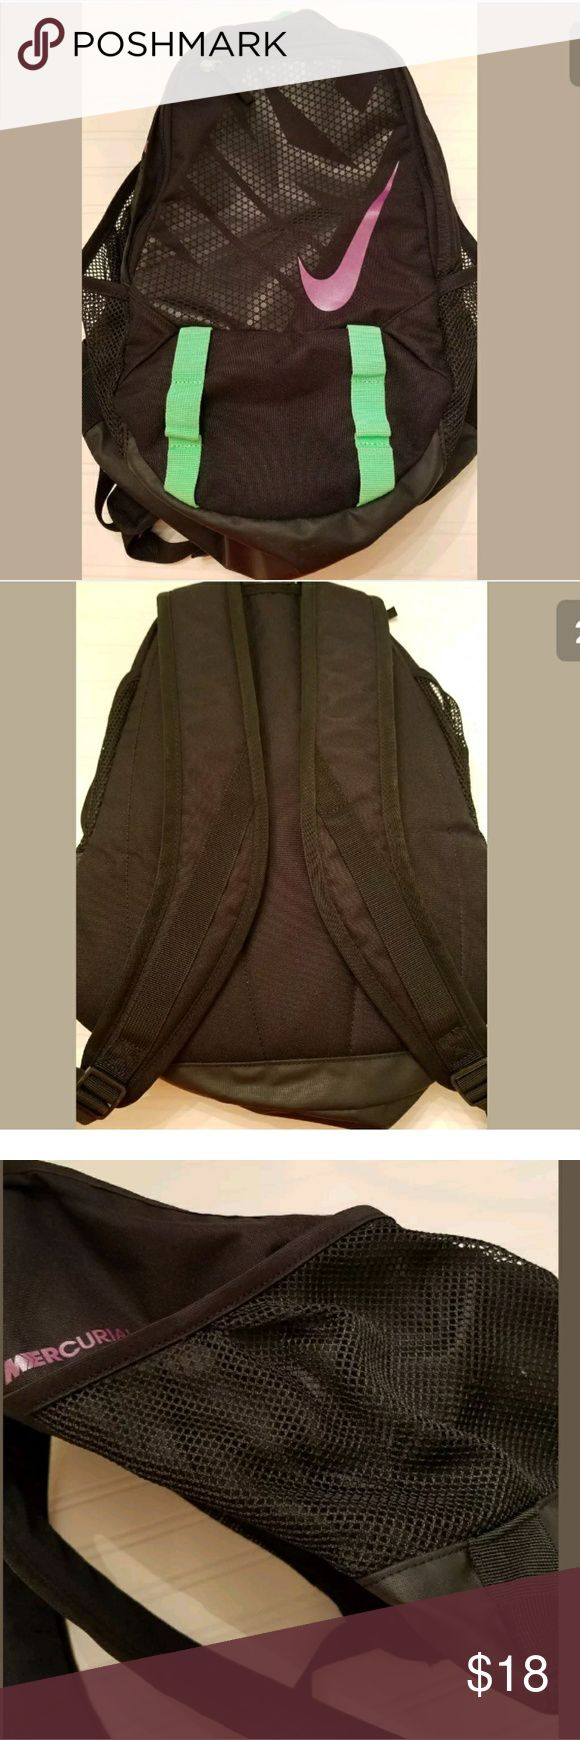 Nike Soccer or Basketball Backpack Gently used. Measures approximately 17 high and 15 inches at widest point. Machine washable. Fresly washed. Small insignificant scuff marks on the bottom please see last picture. Great working order no tears. Nike Bags Backpacks